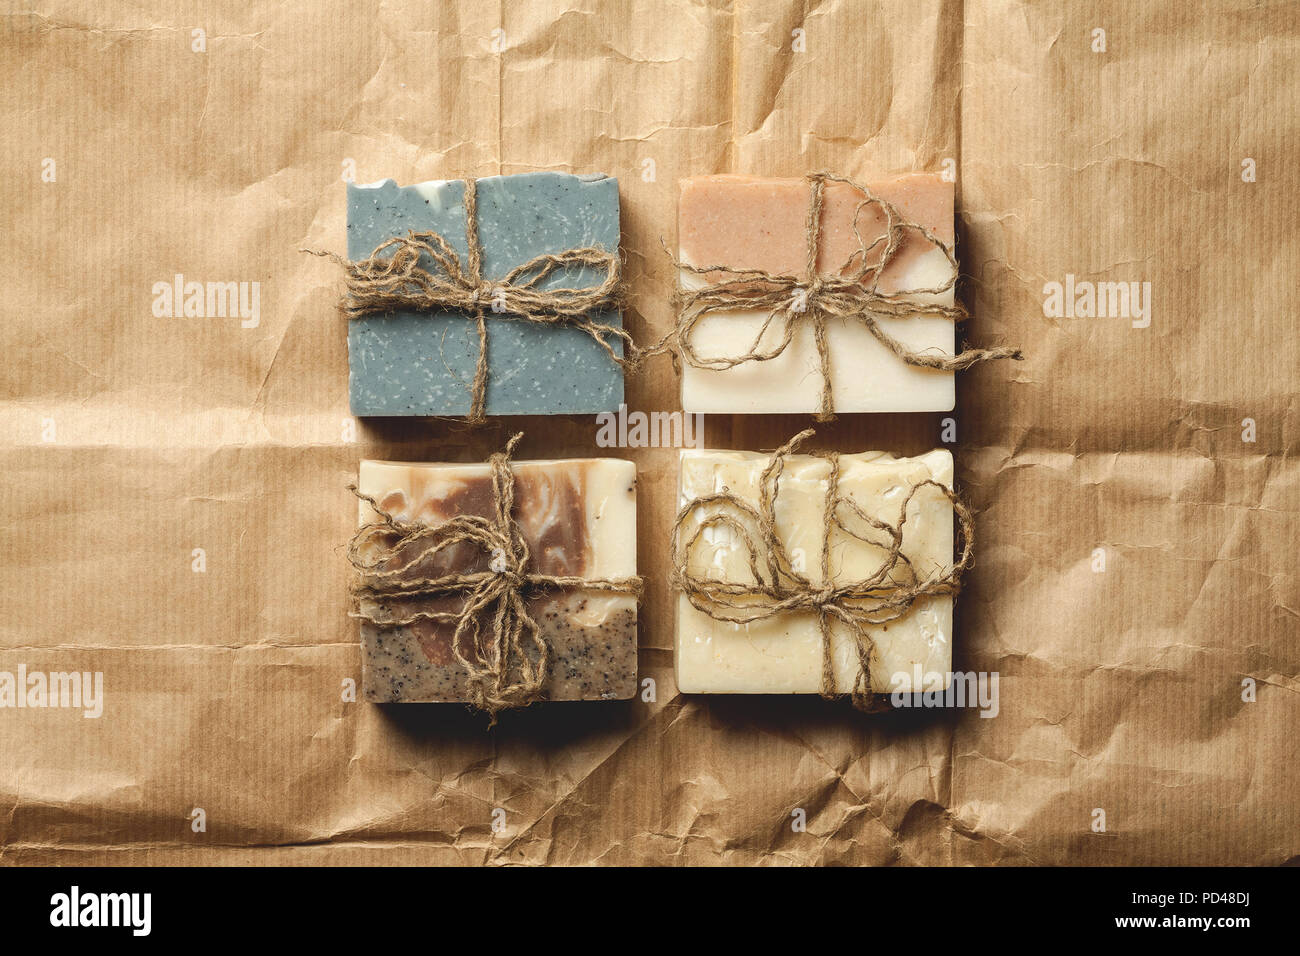 Organic handmade soap on packing paper. four slices - Stock Image